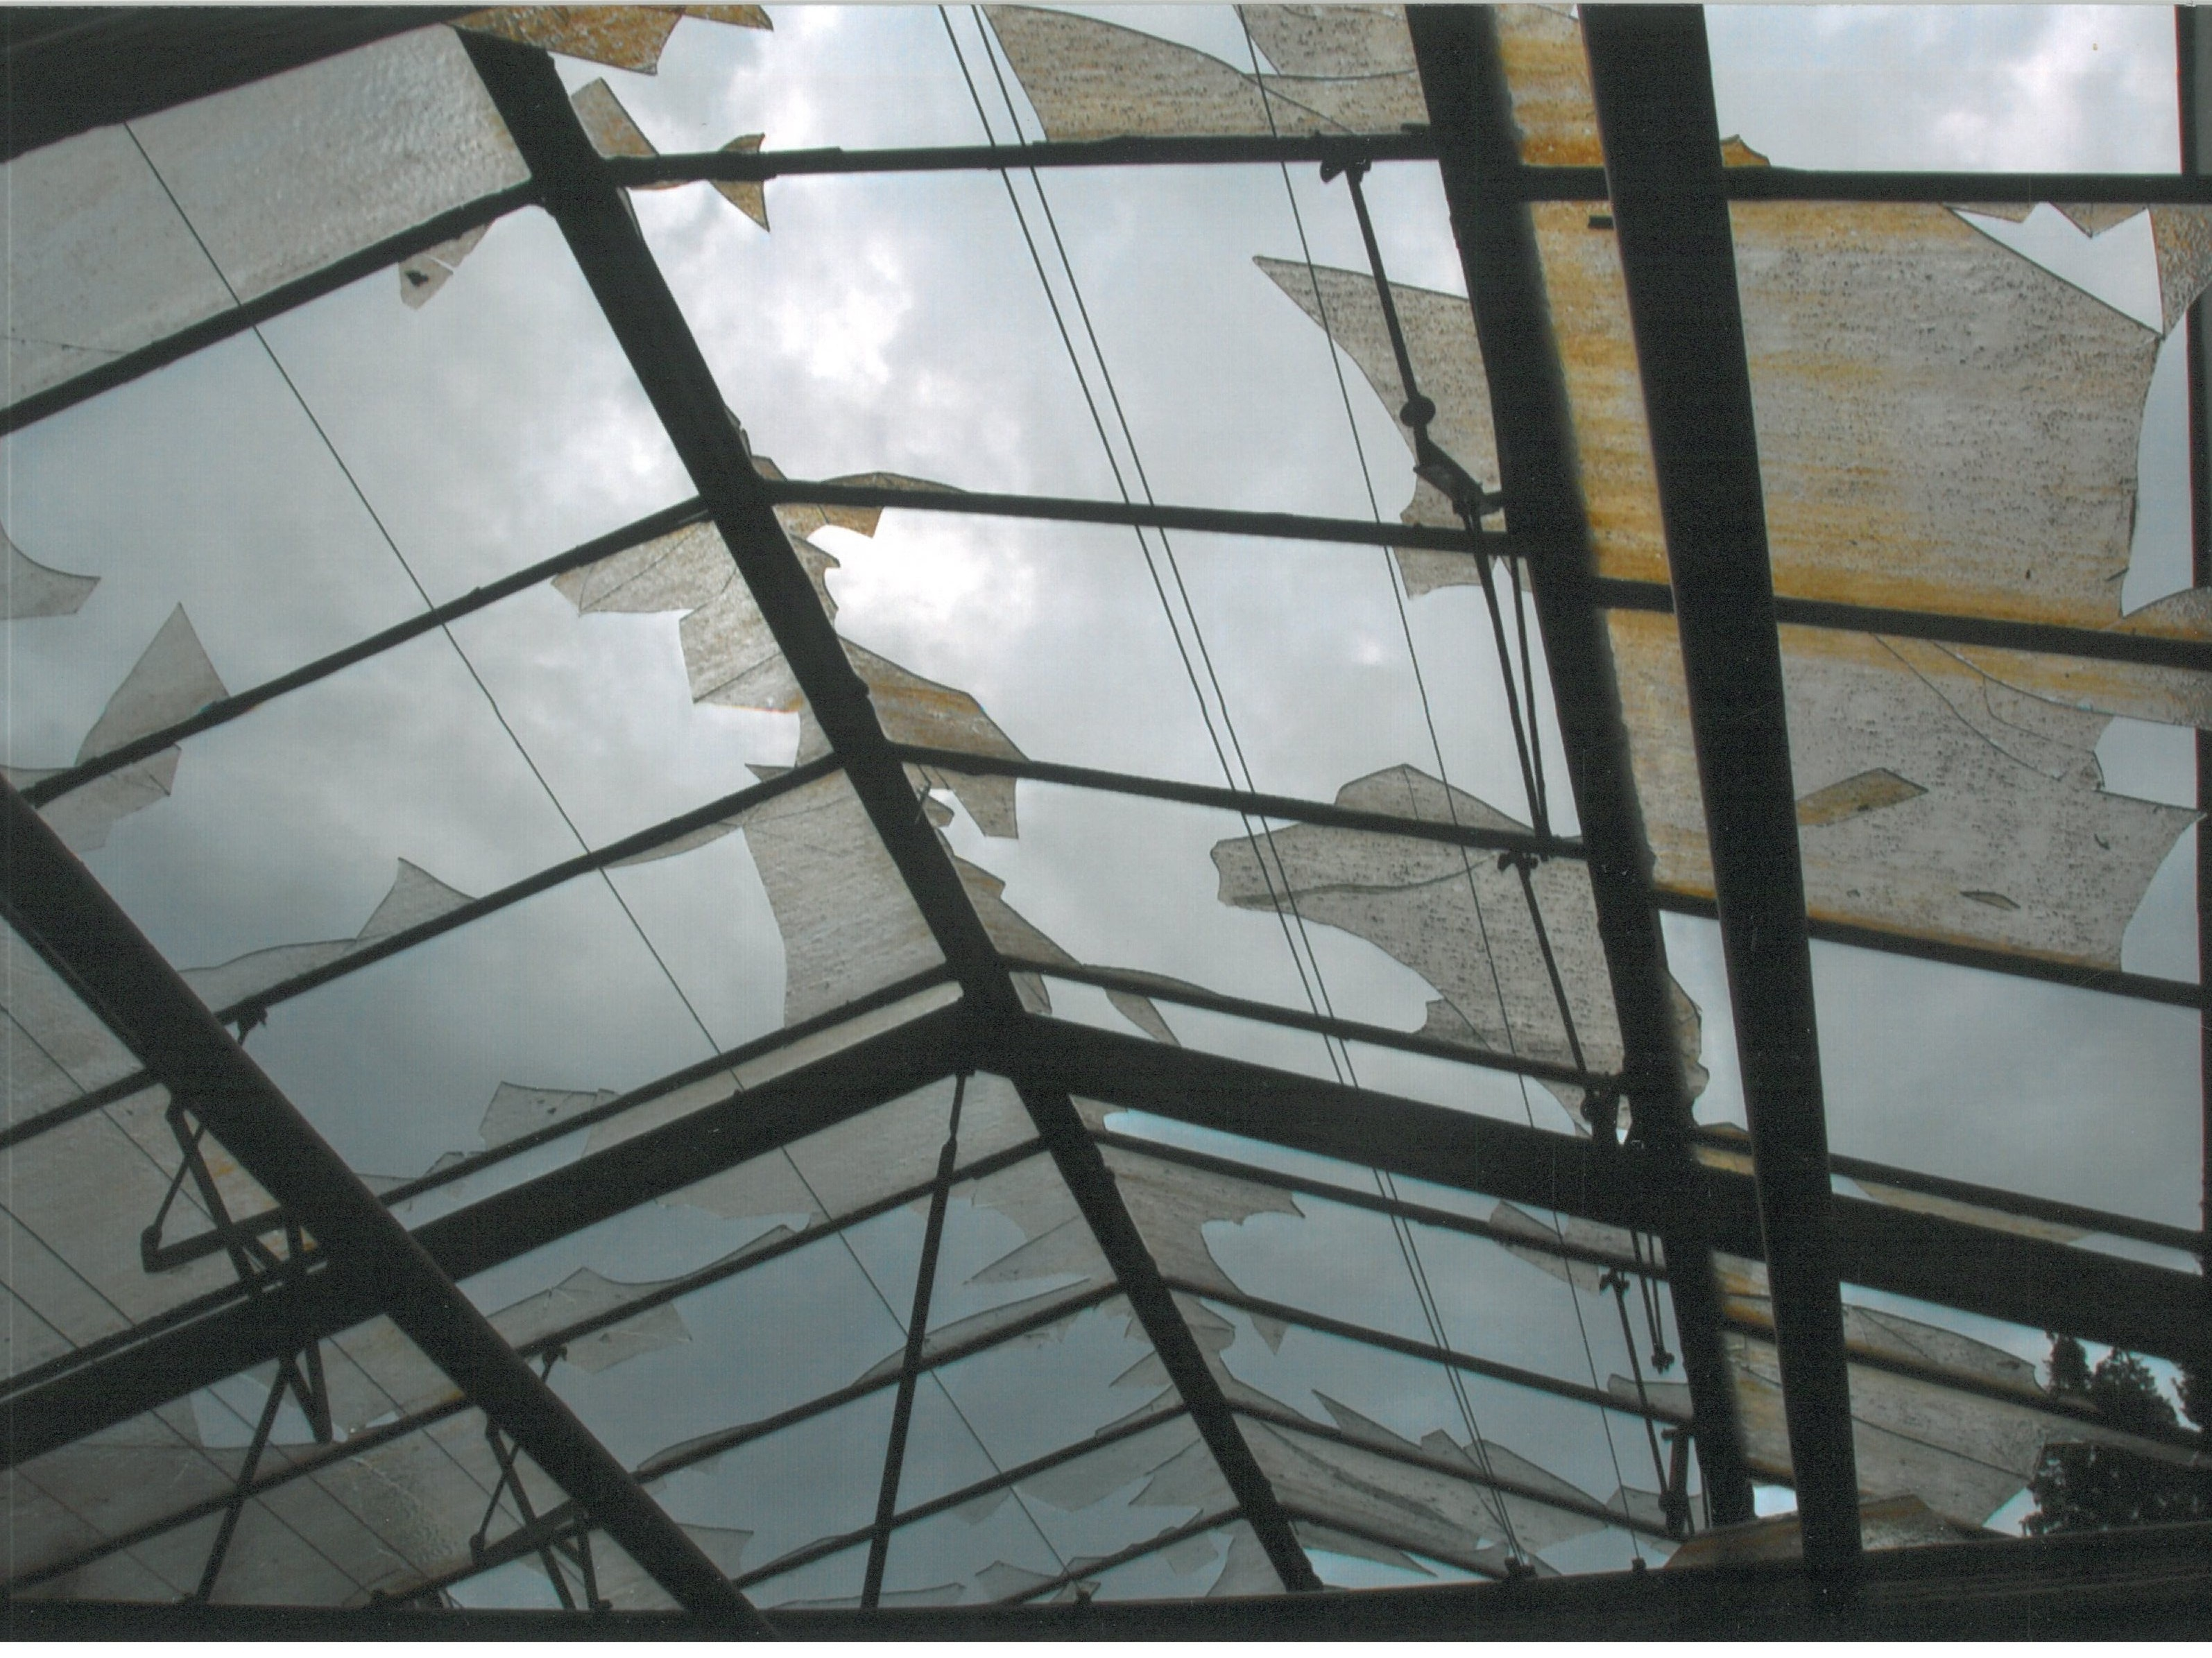 Greenhouse Roofing After Hail